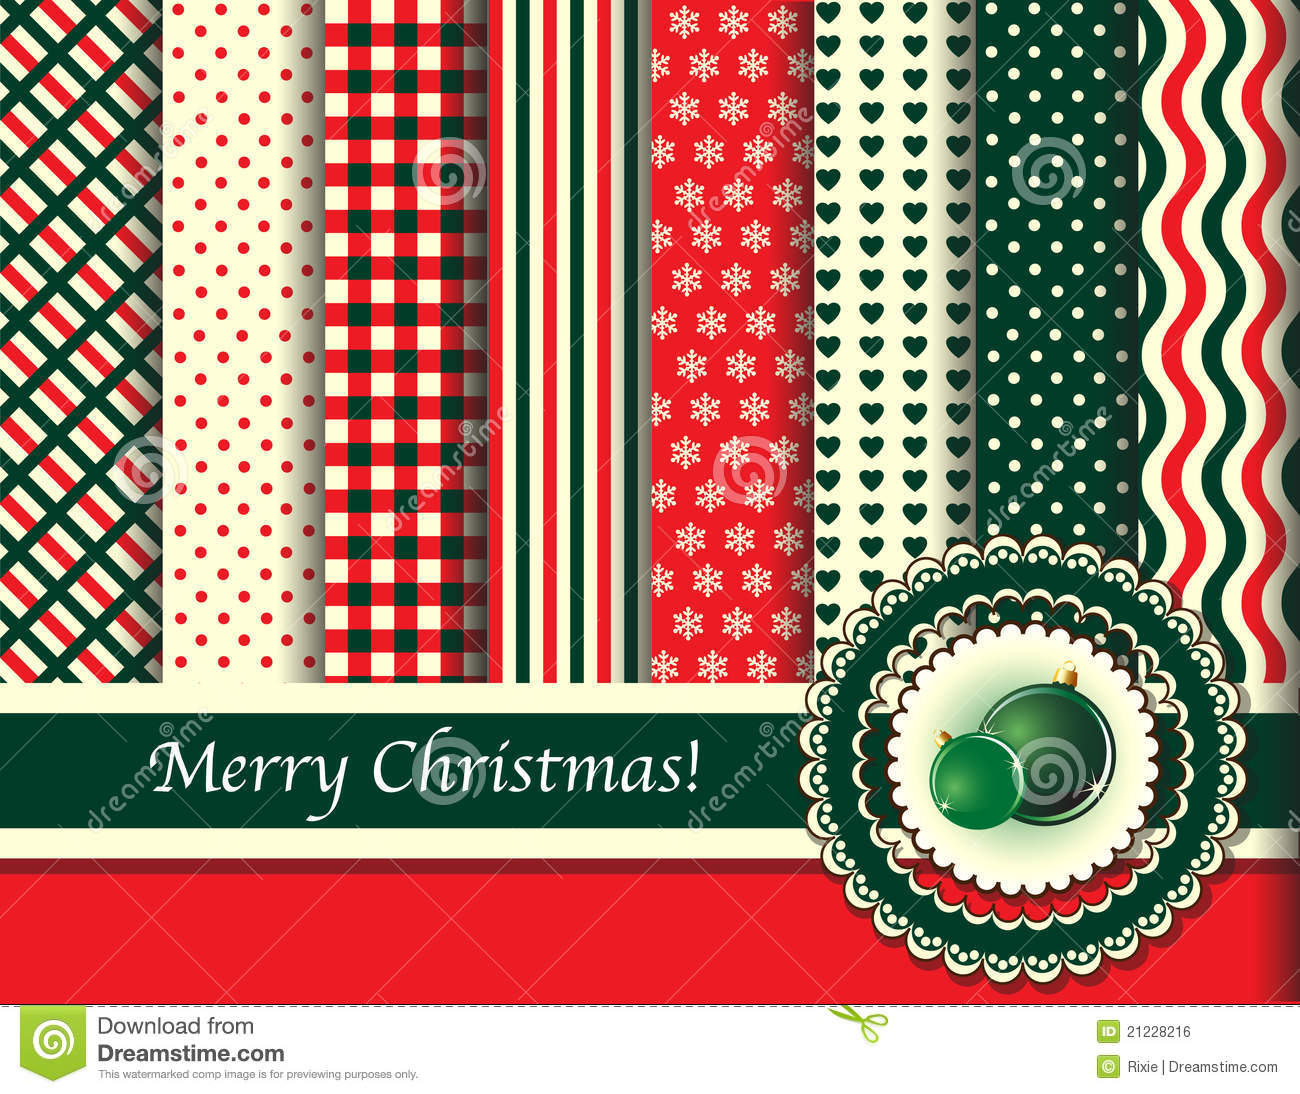 Christmas Scrapbooking Retro Tones Stock Vector Image